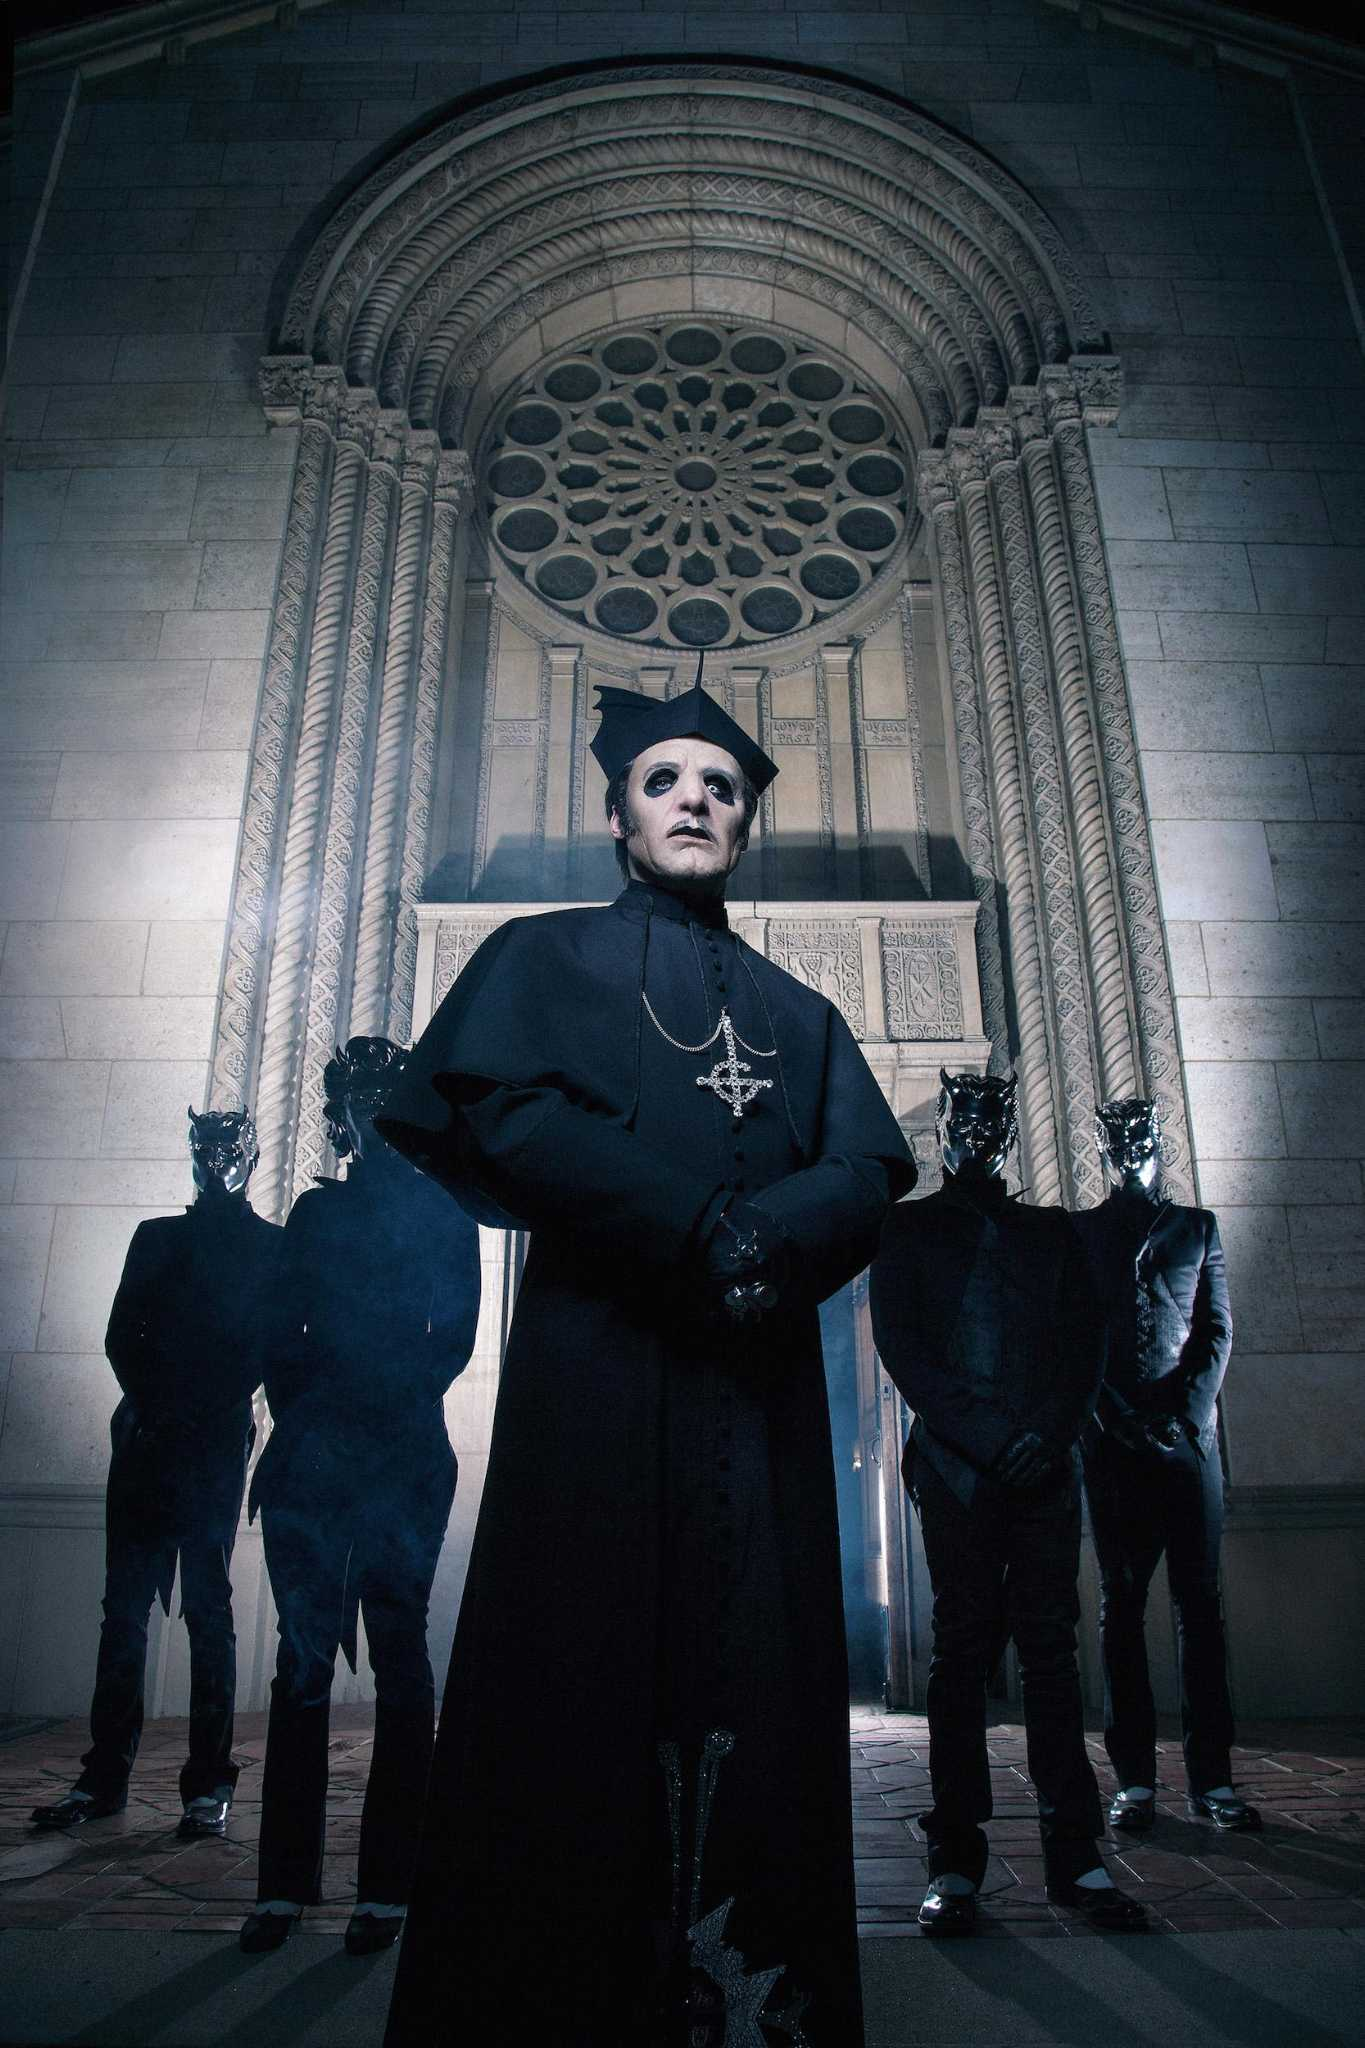 ghost is the smartest band in the world